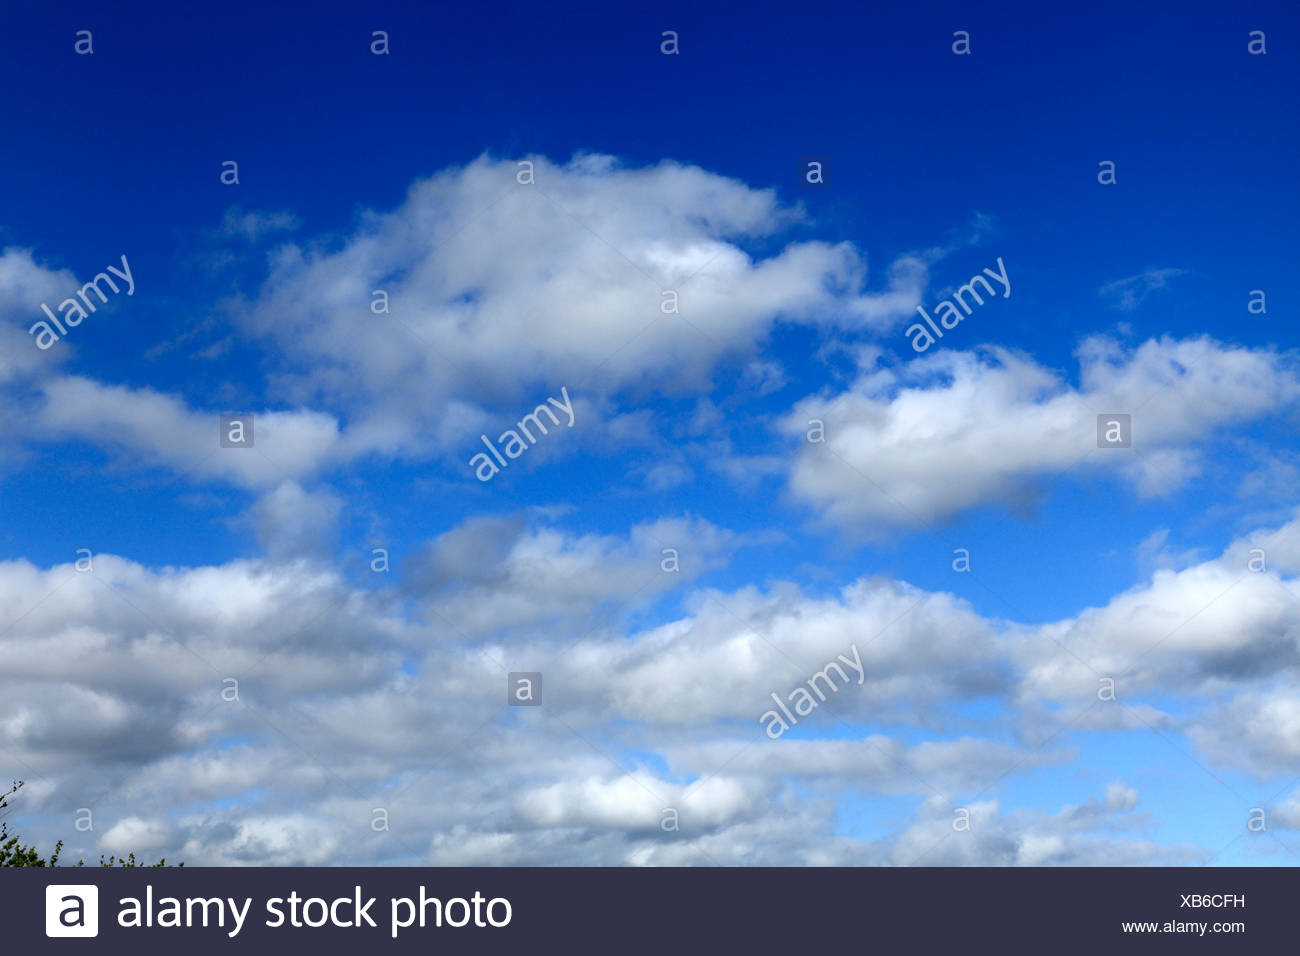 White cumulus clouds, blue sky cloud skies UK - Stock Image